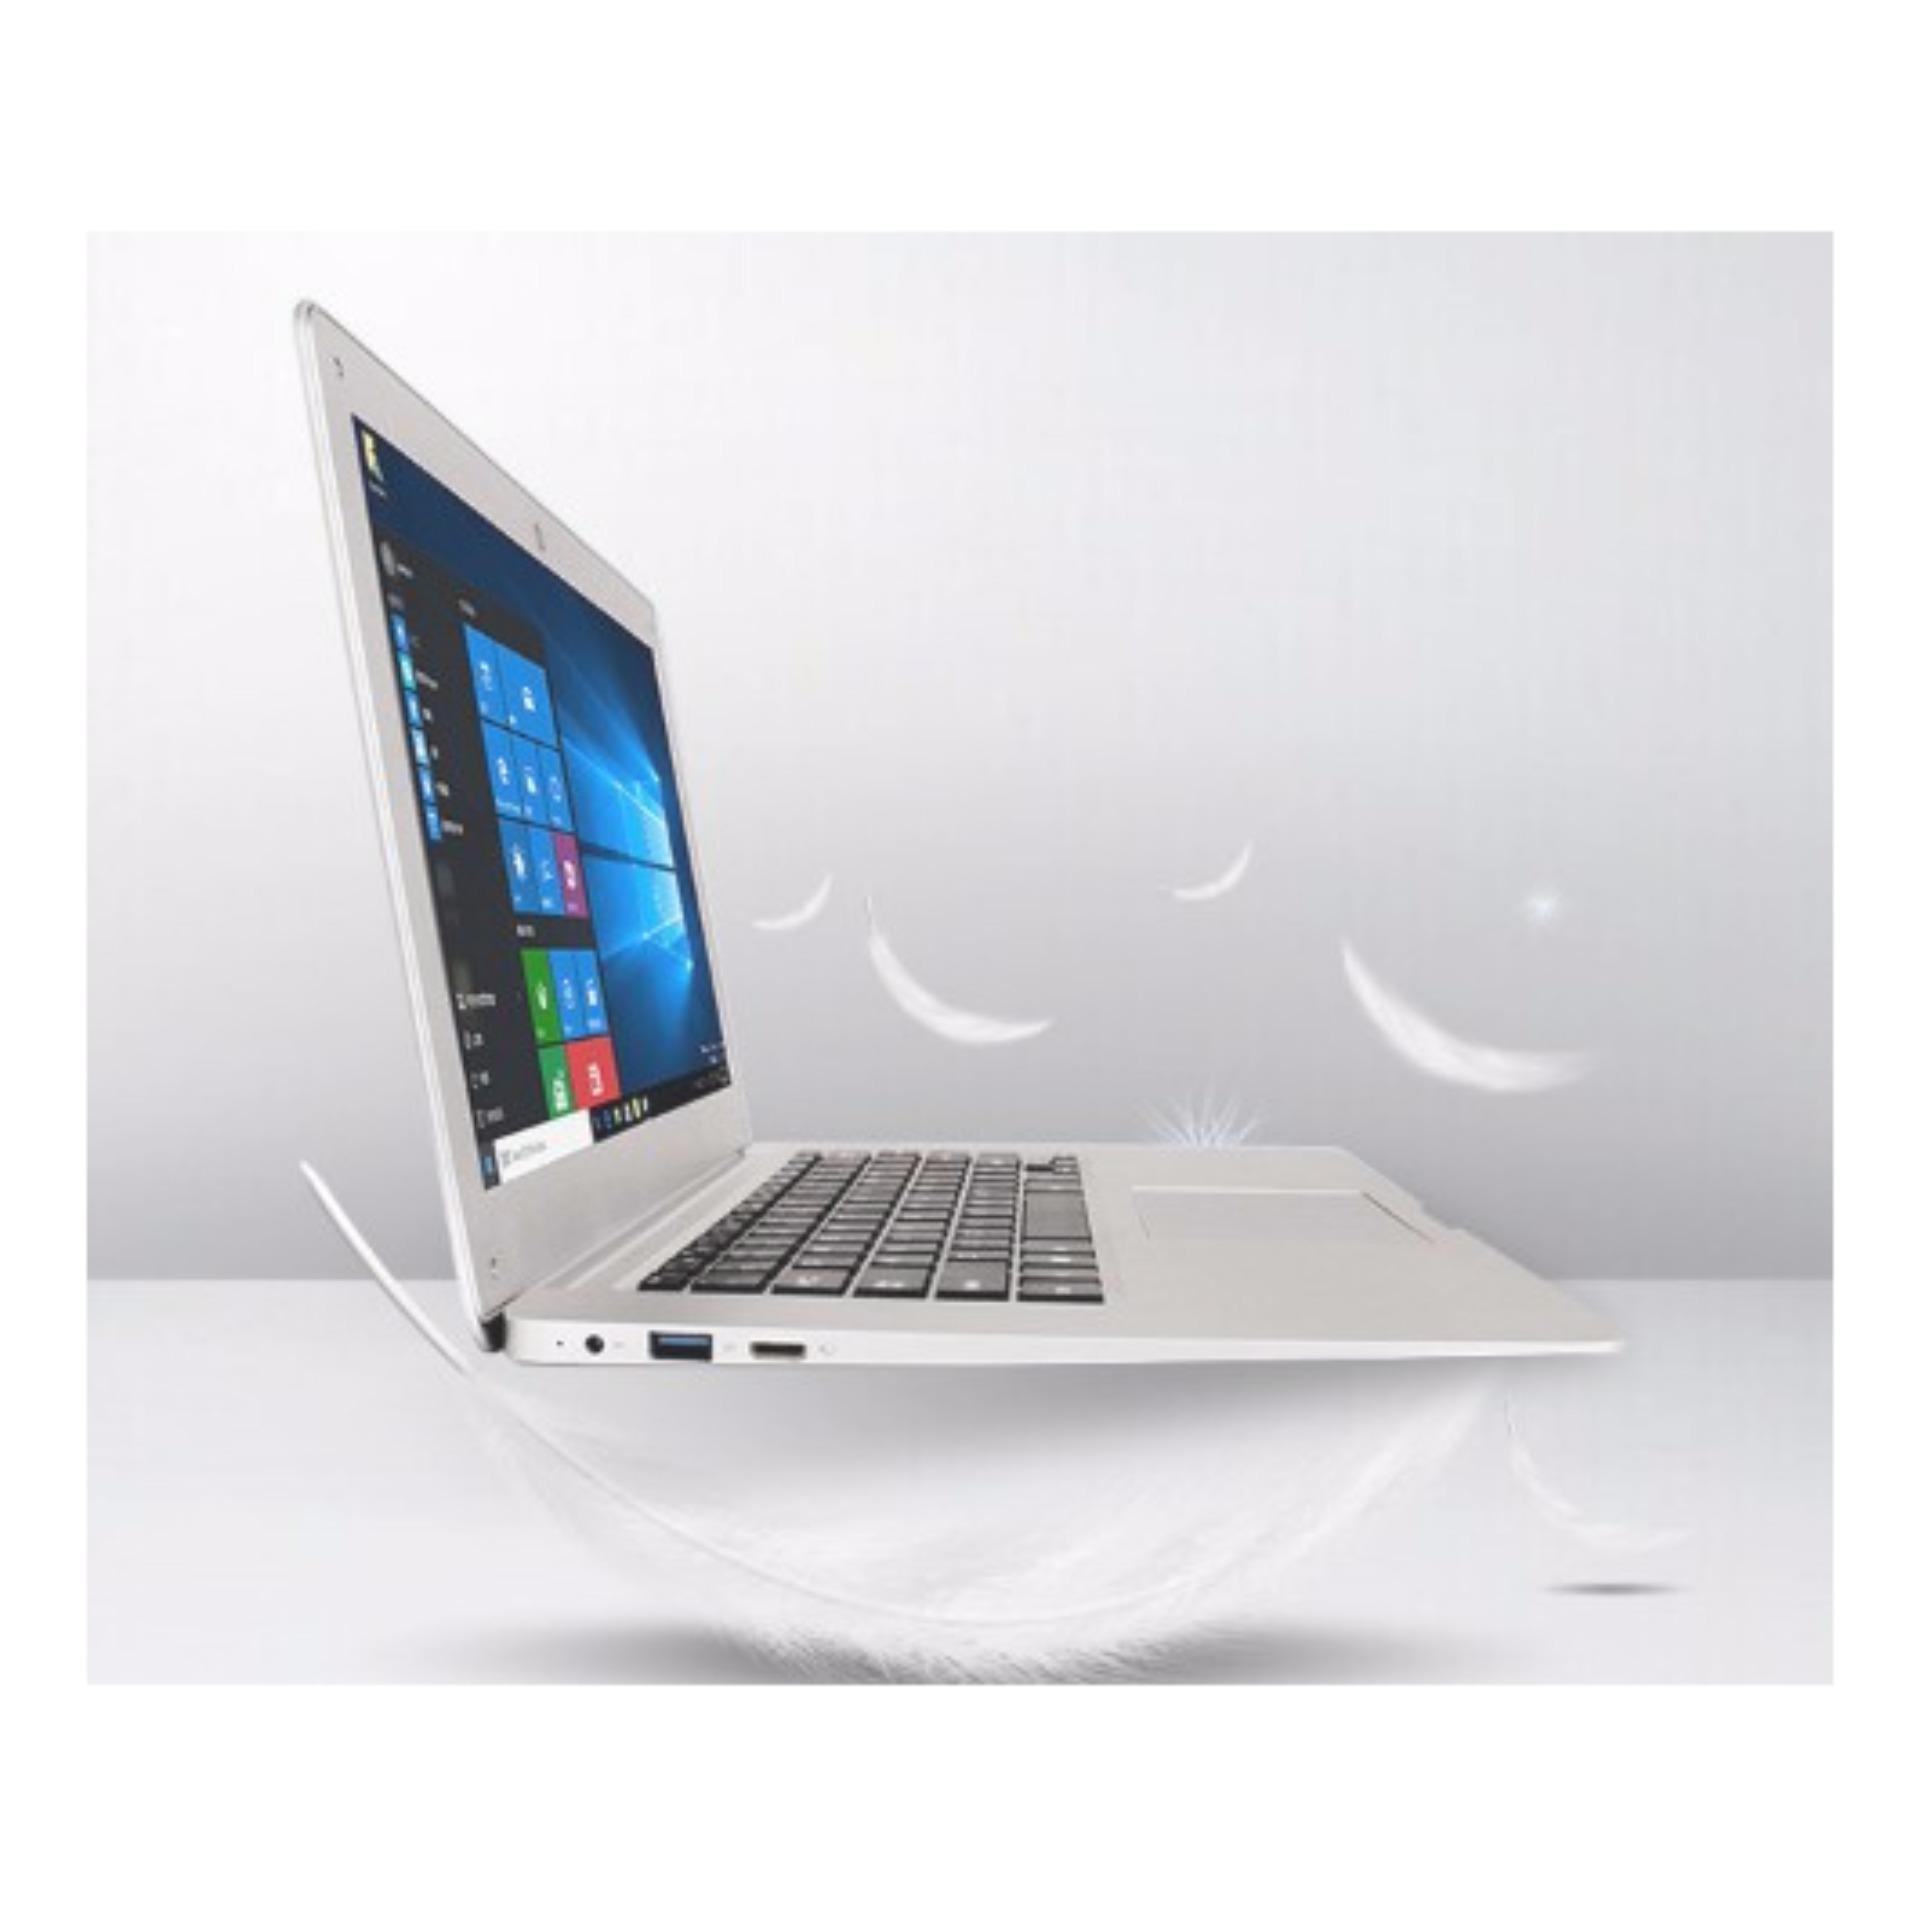 So sánh giá Notebook Windows 10 14 inch chip Intel lõi tứ Z8350 1.92GHz 2GB RAM 32GB Tại PHẠM GIA DIGITAL